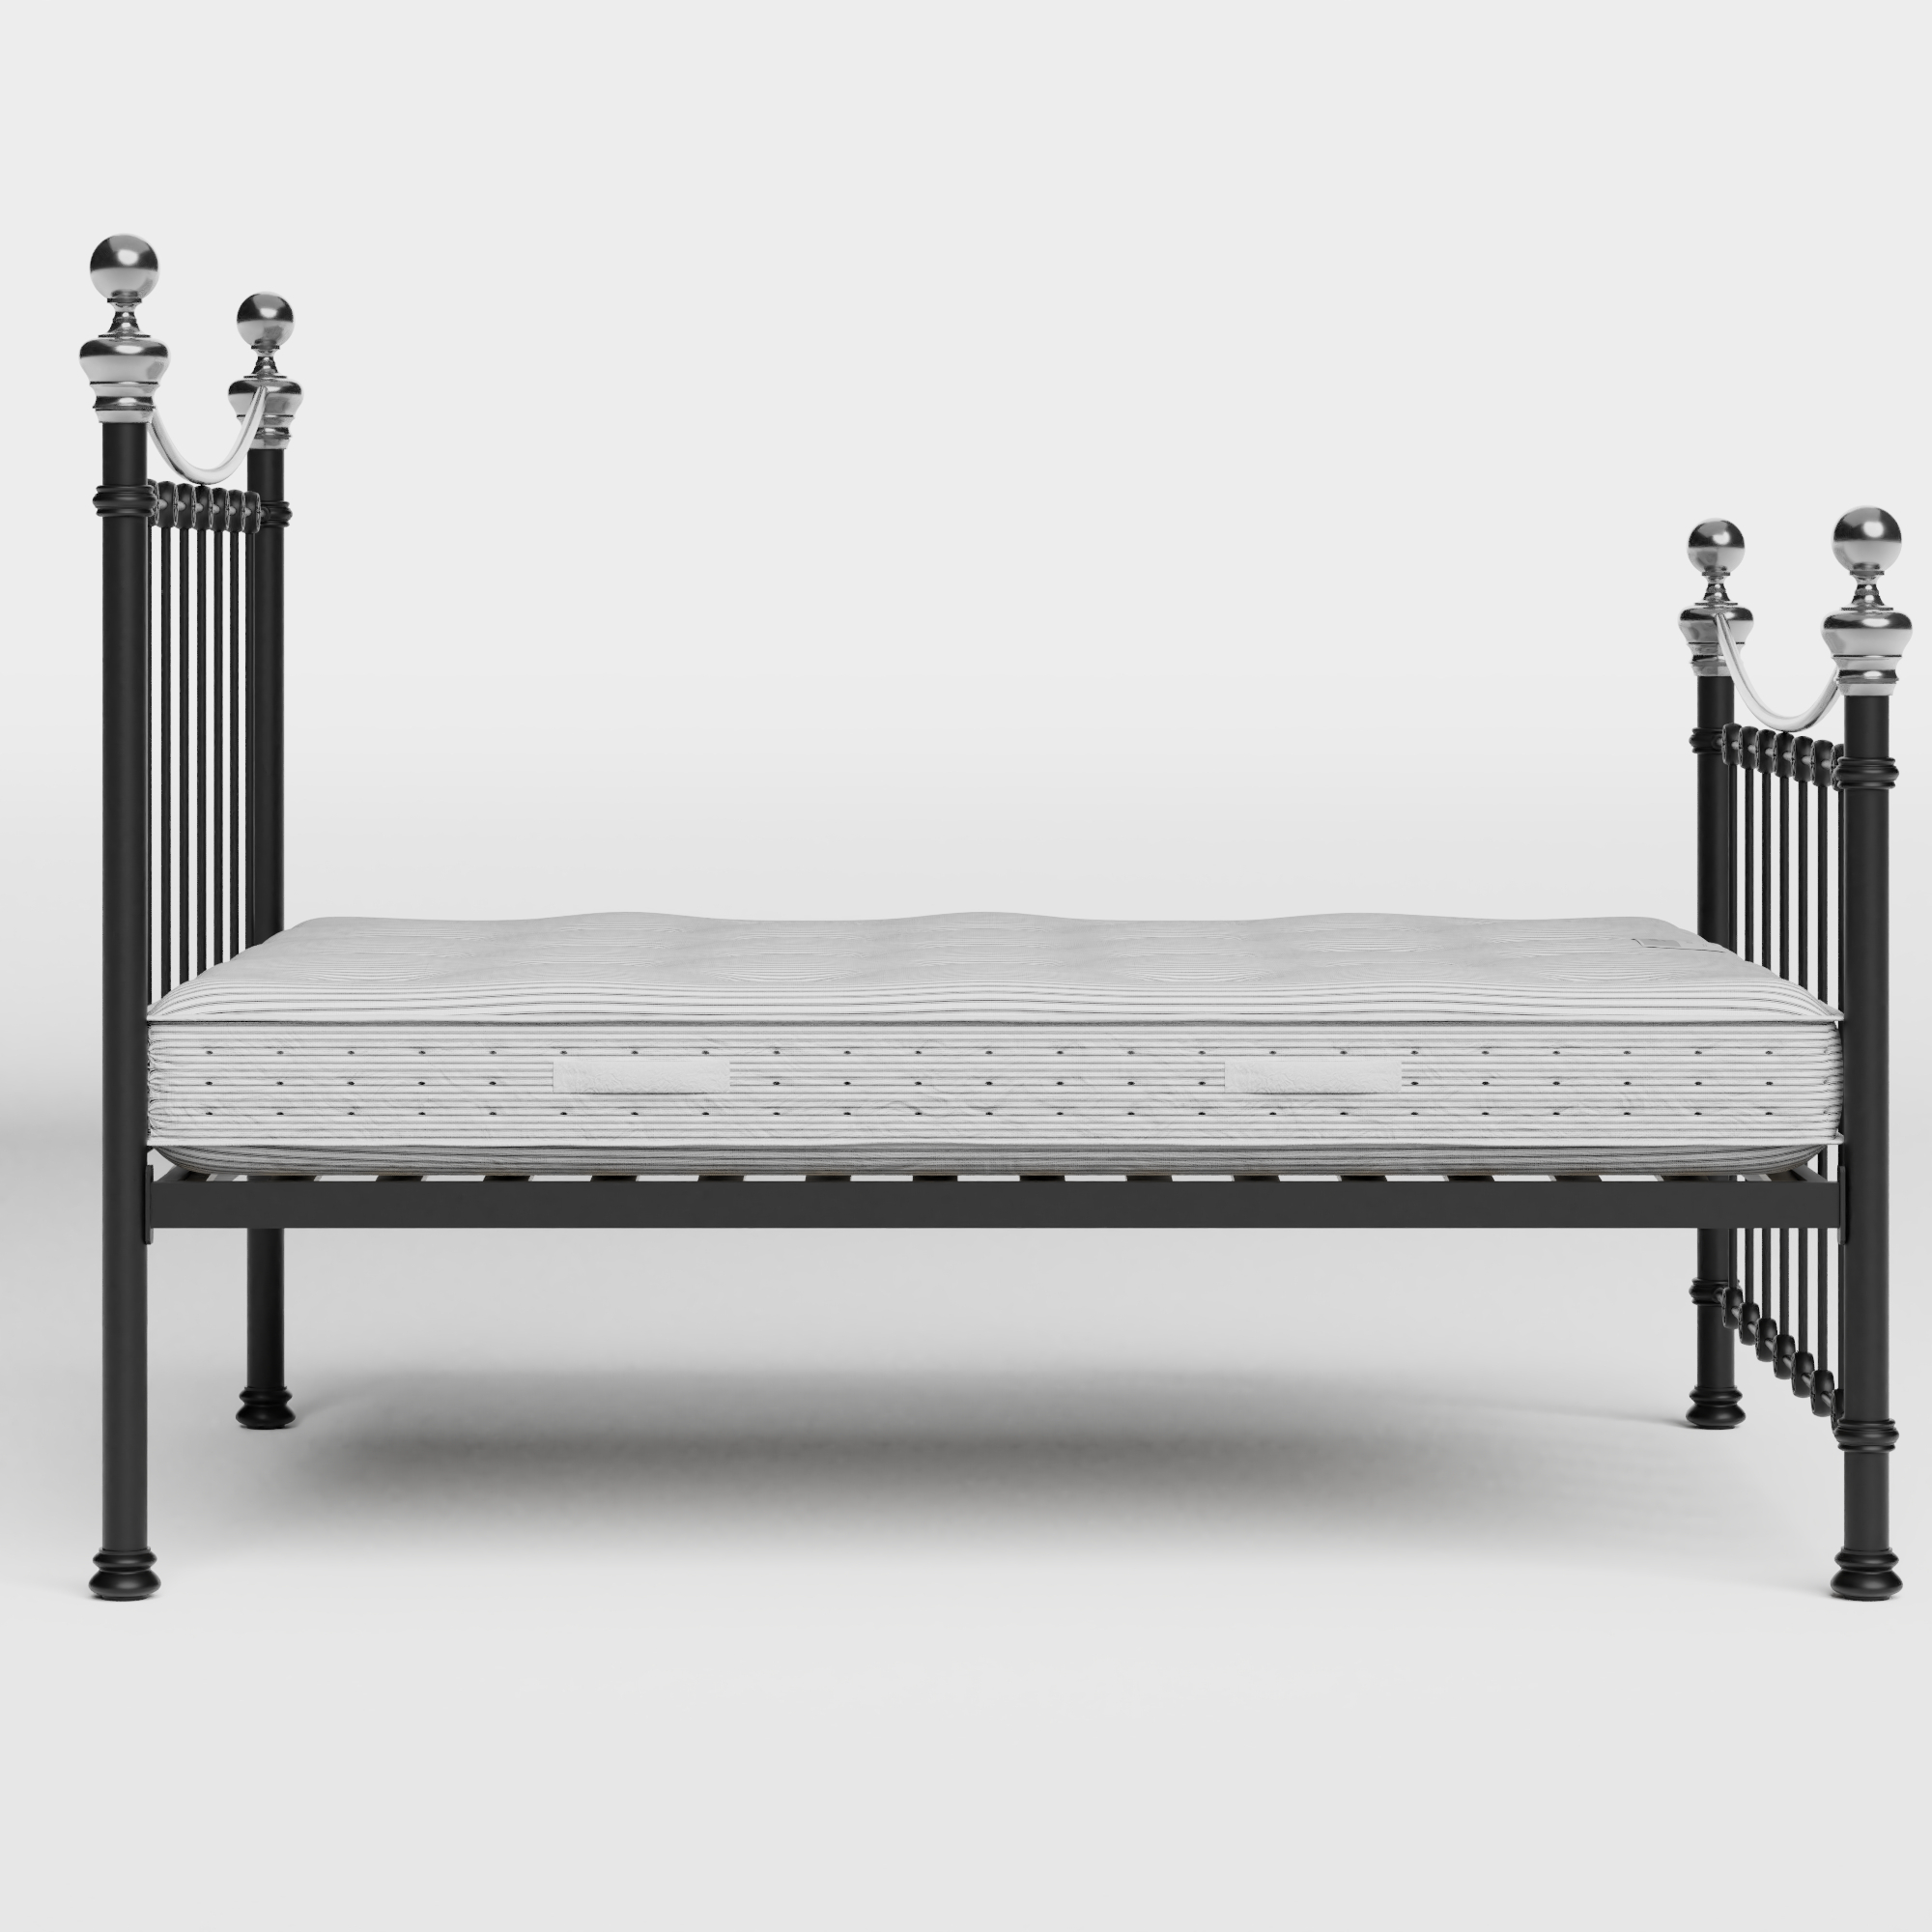 Selkirk Chromo iron/metal bed in black with Juno mattress